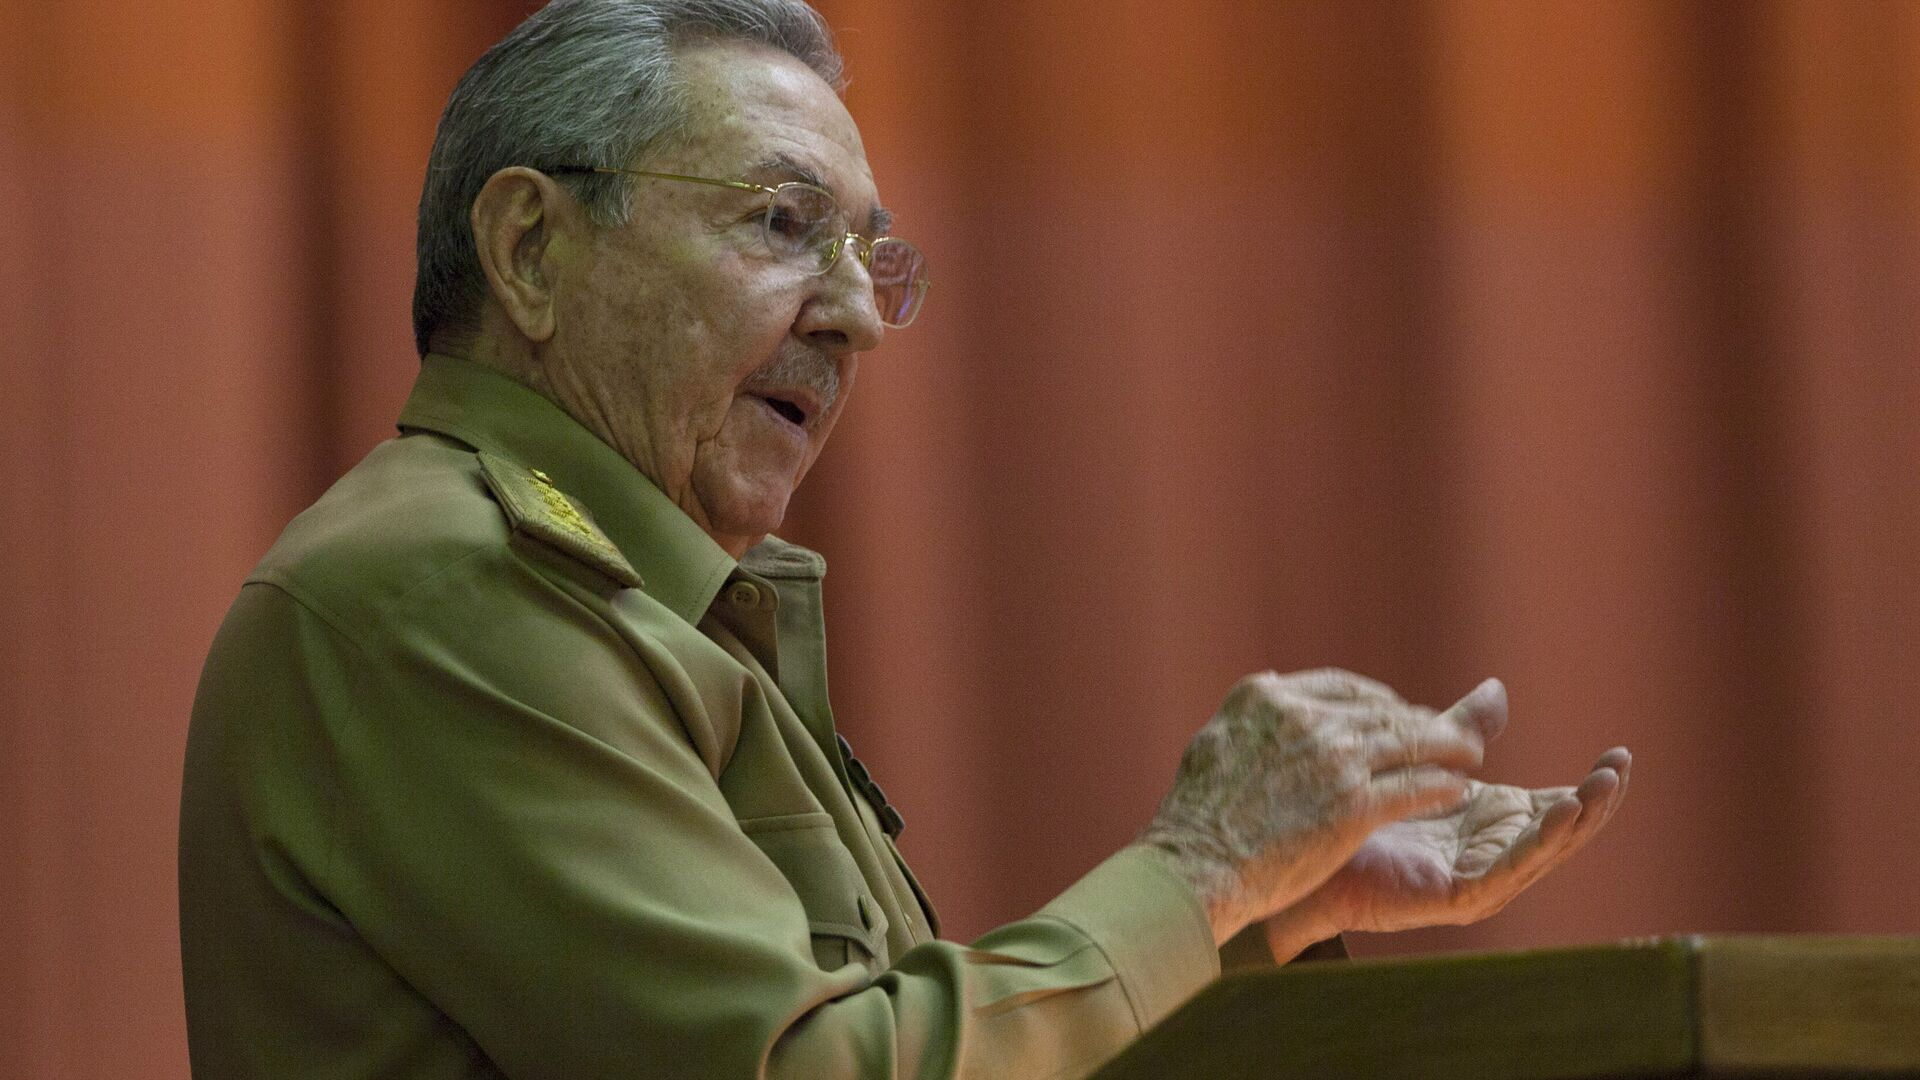 Cuba's President Raul Castro applauds as he addresses the National Assembly in Havana, Cuba, Wednesday, July 15, 2015 - Sputnik Mundo, 1920, 16.04.2021